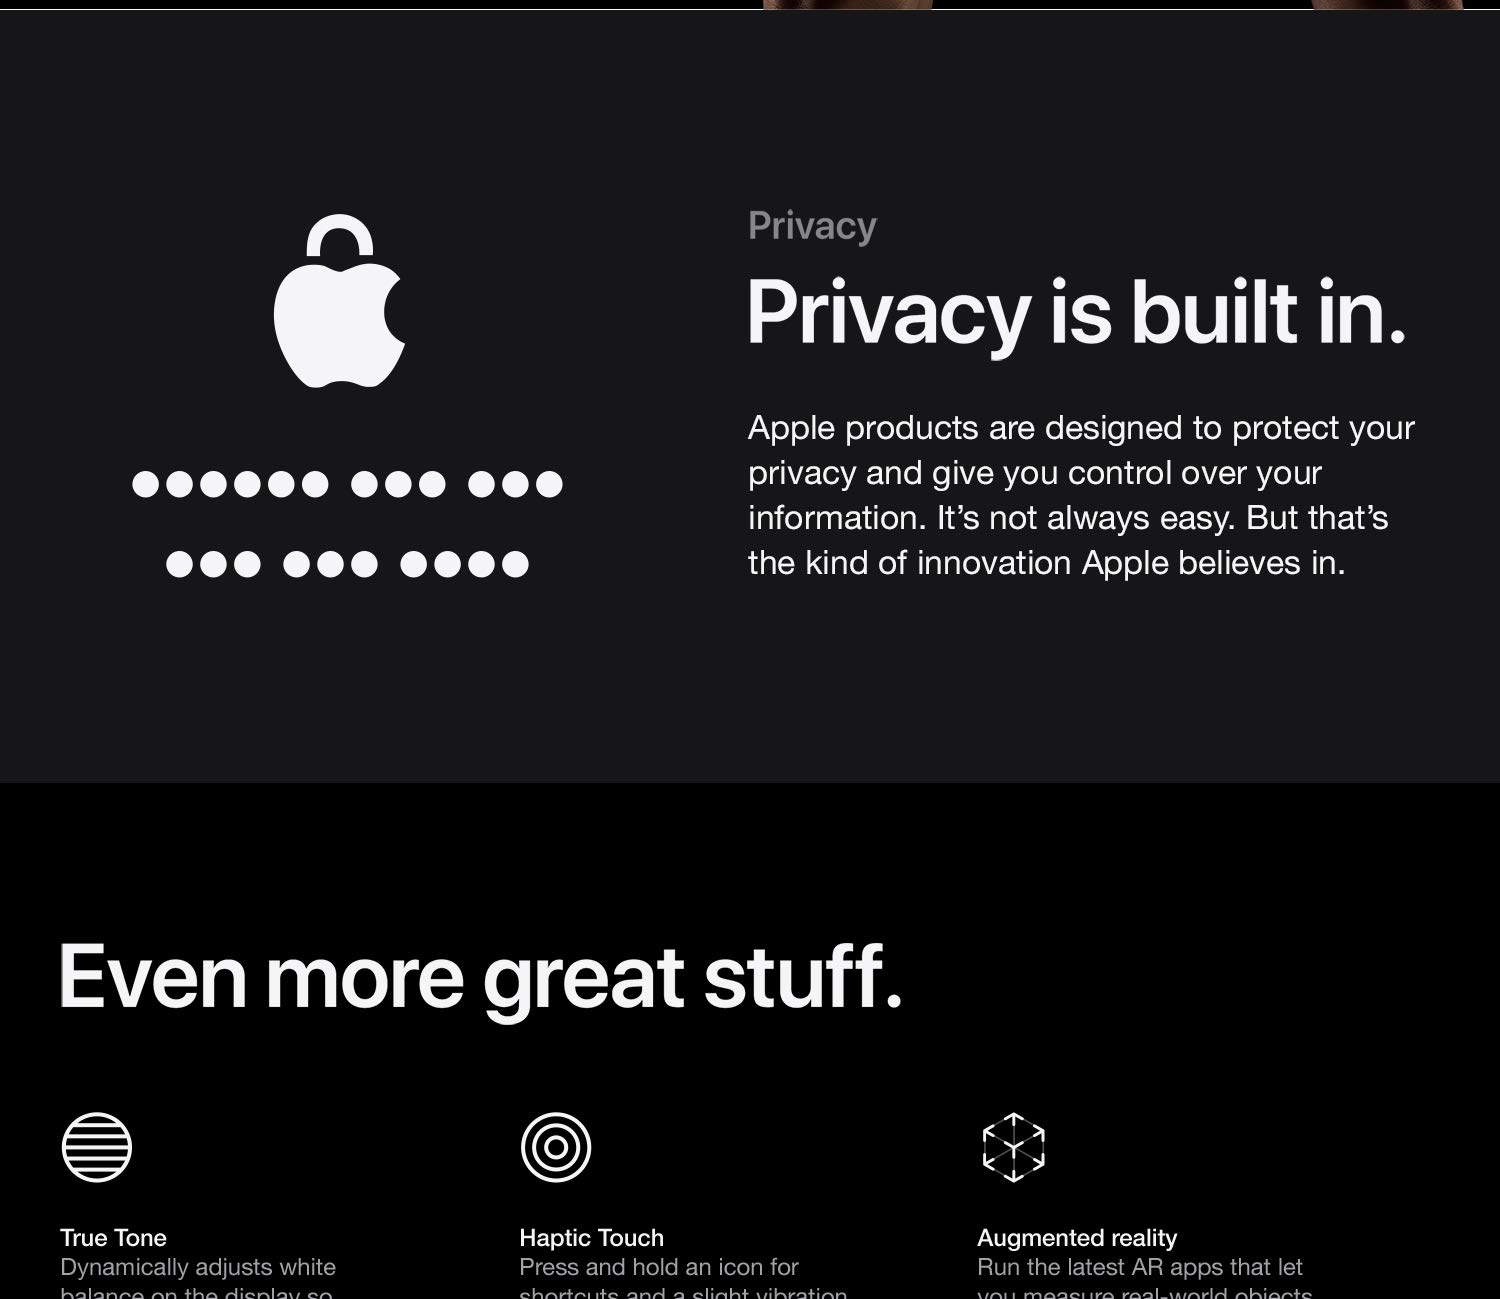 Privacy is built in. Apple products are designed to protect your privacy and give you control over your information. It's not always easy. But that's the kind of innovation Apple believes in.